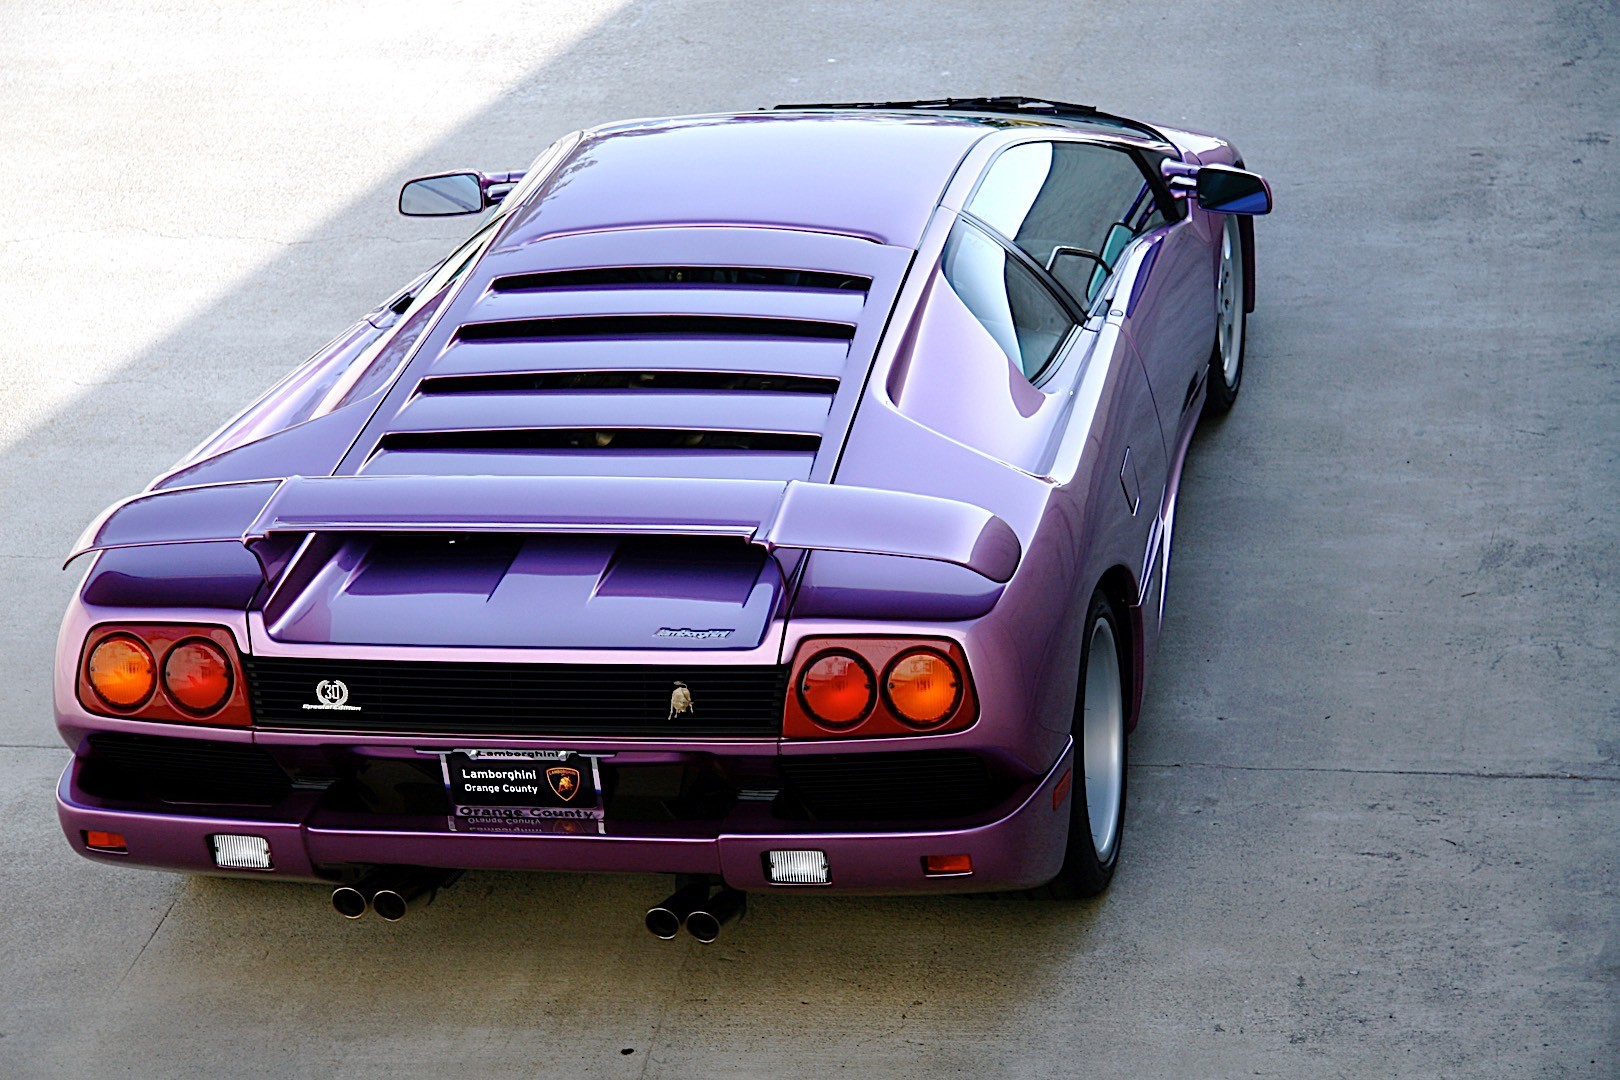 lamborghini diablo se 30 specs 1994 1995 autoevolution. Black Bedroom Furniture Sets. Home Design Ideas